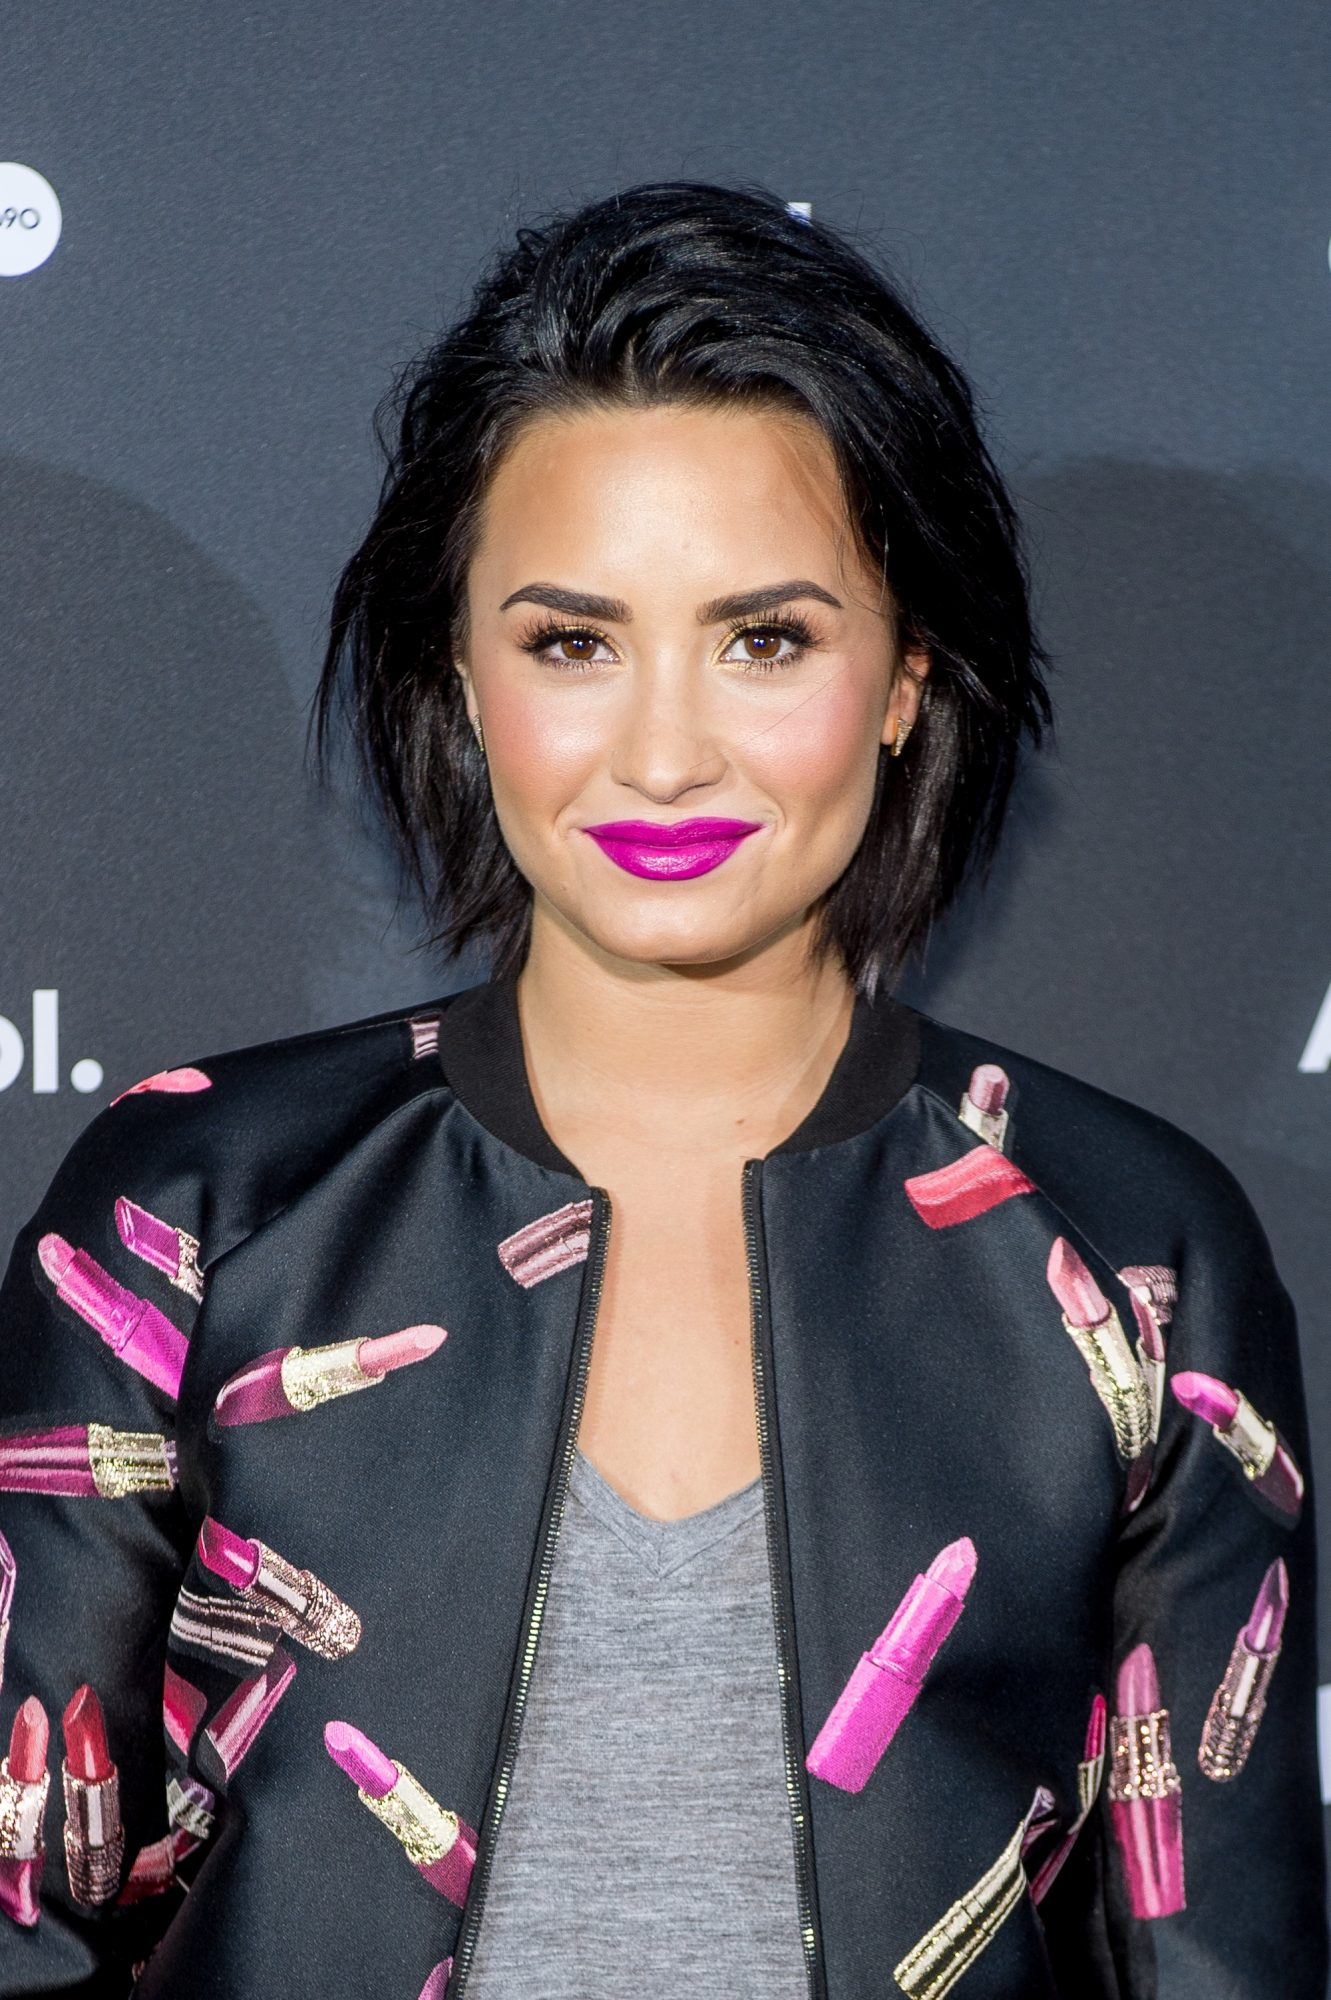 Demi Lovato Workout Session Demi Lovato Workout Routine